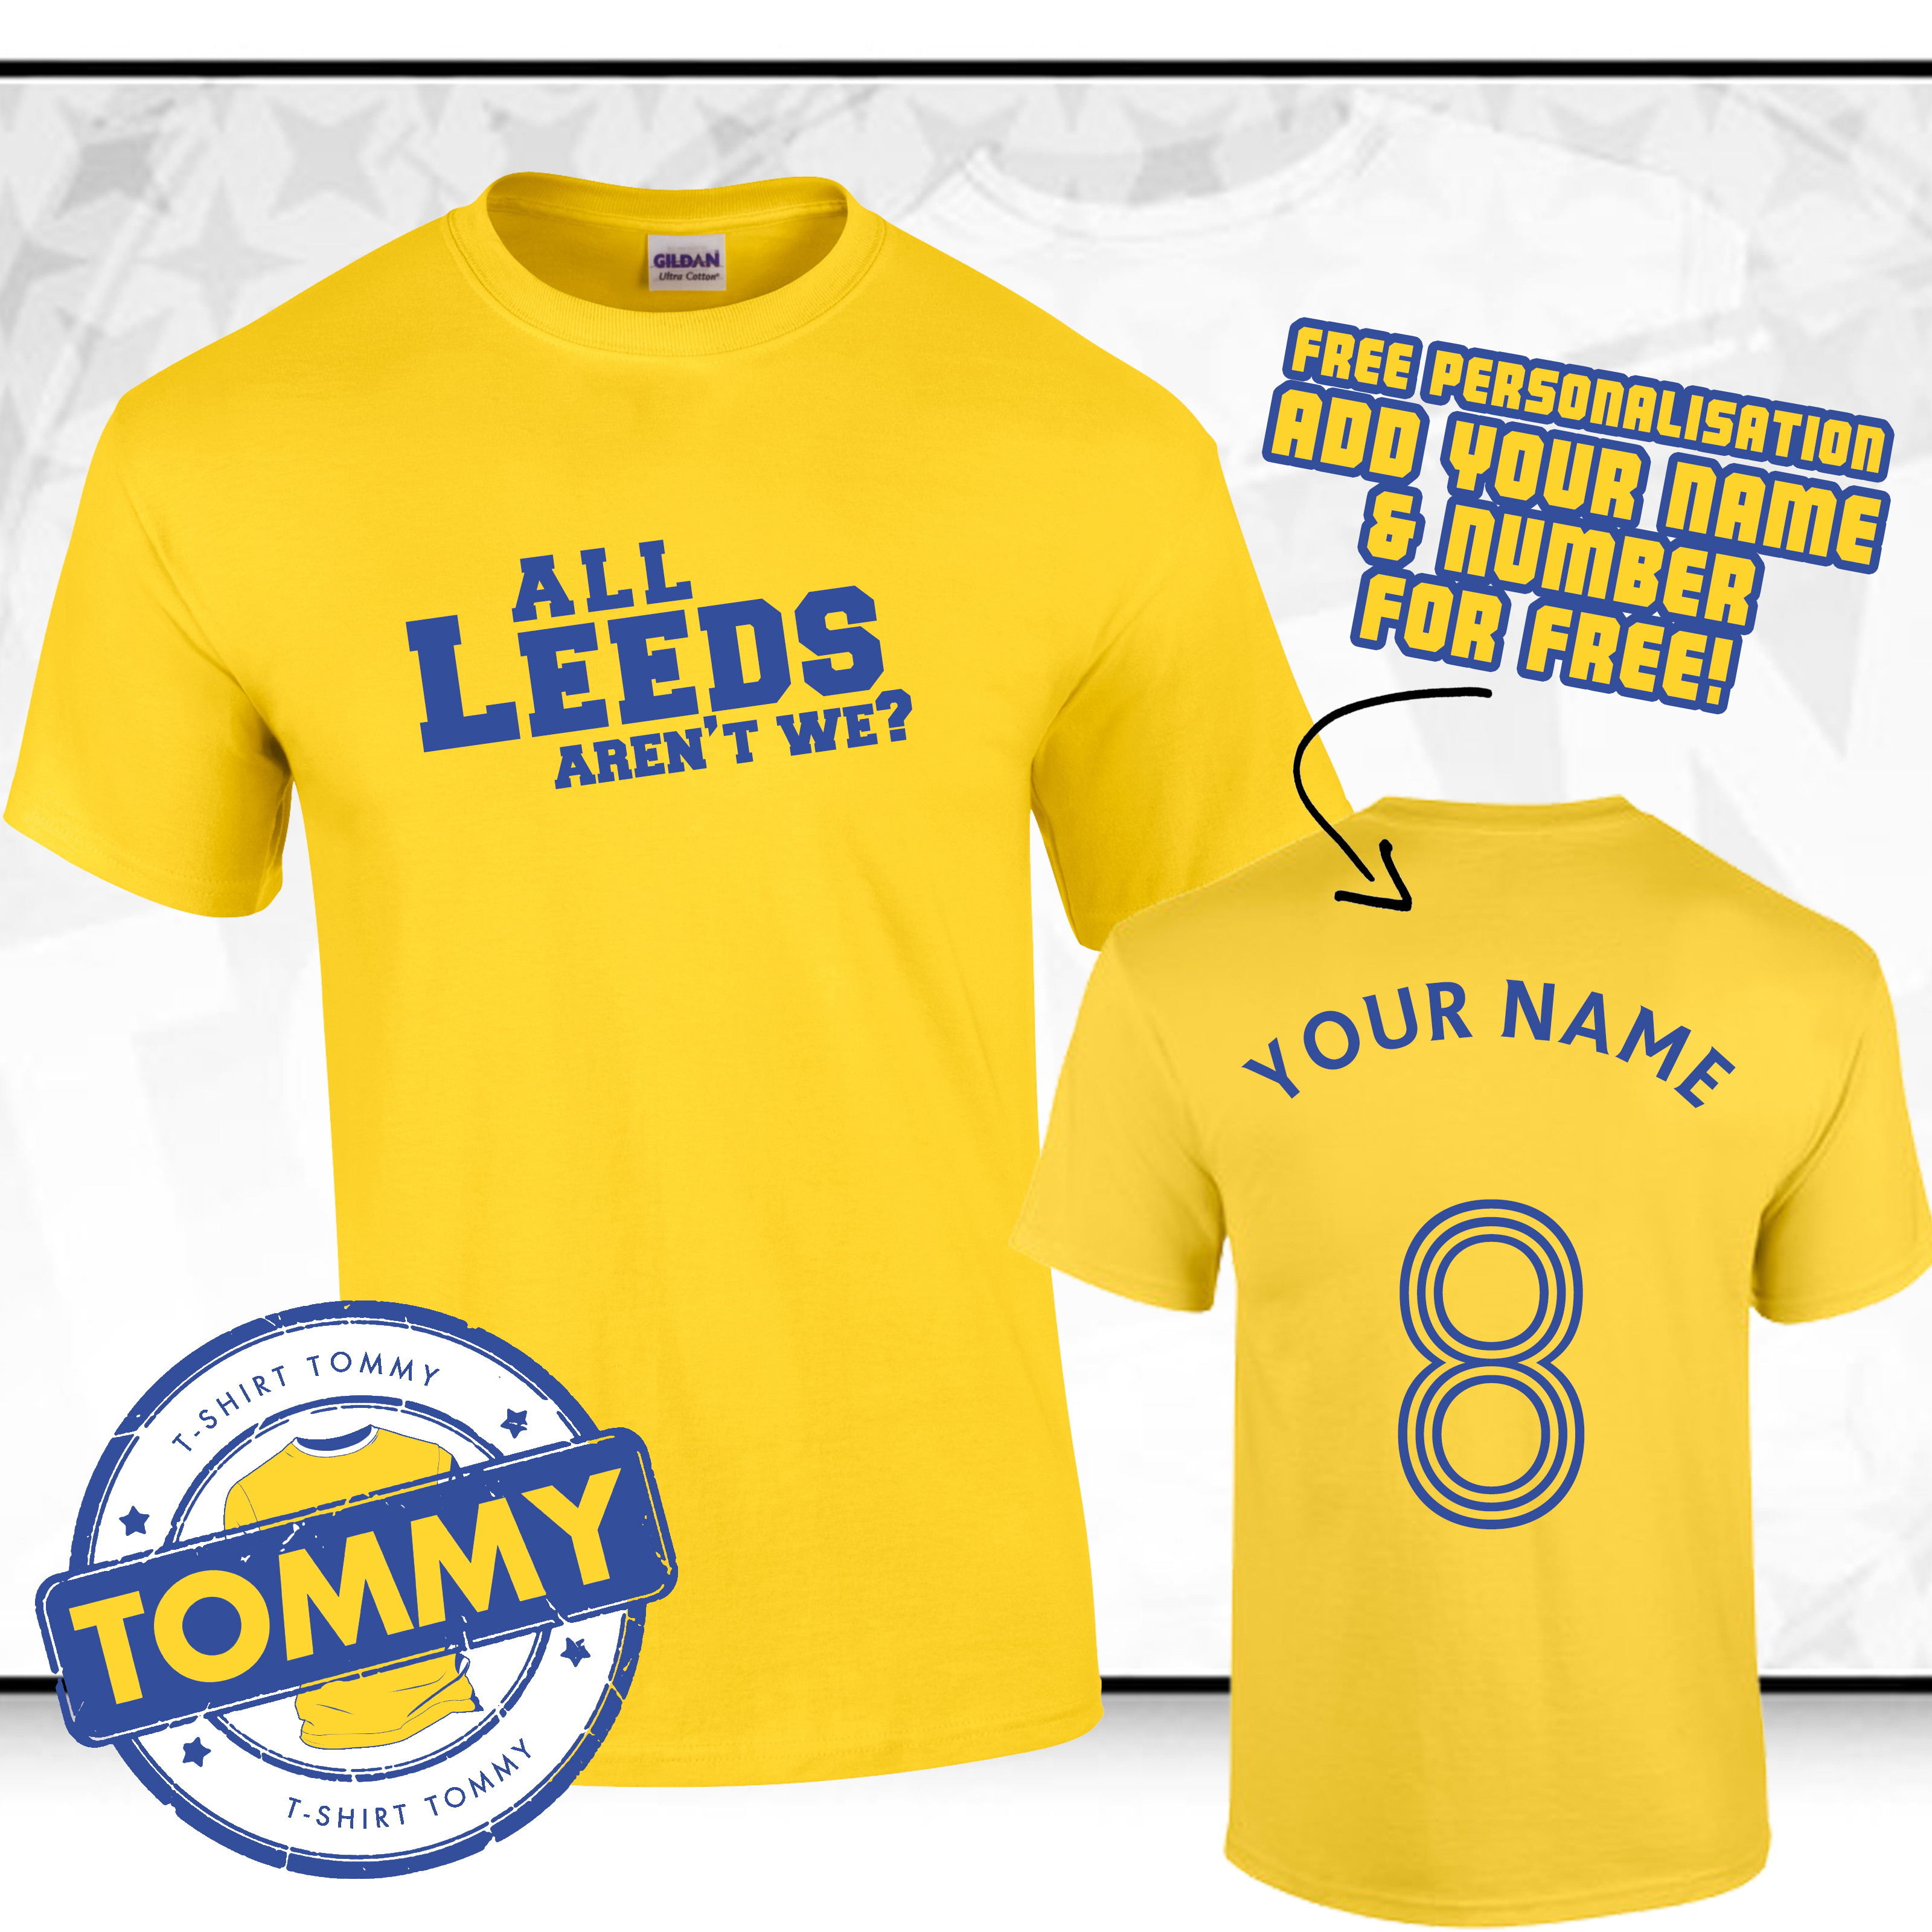 Leeds utd t shirt all leeds aren 39 t we t shirt leeds for Printed t shirts leeds